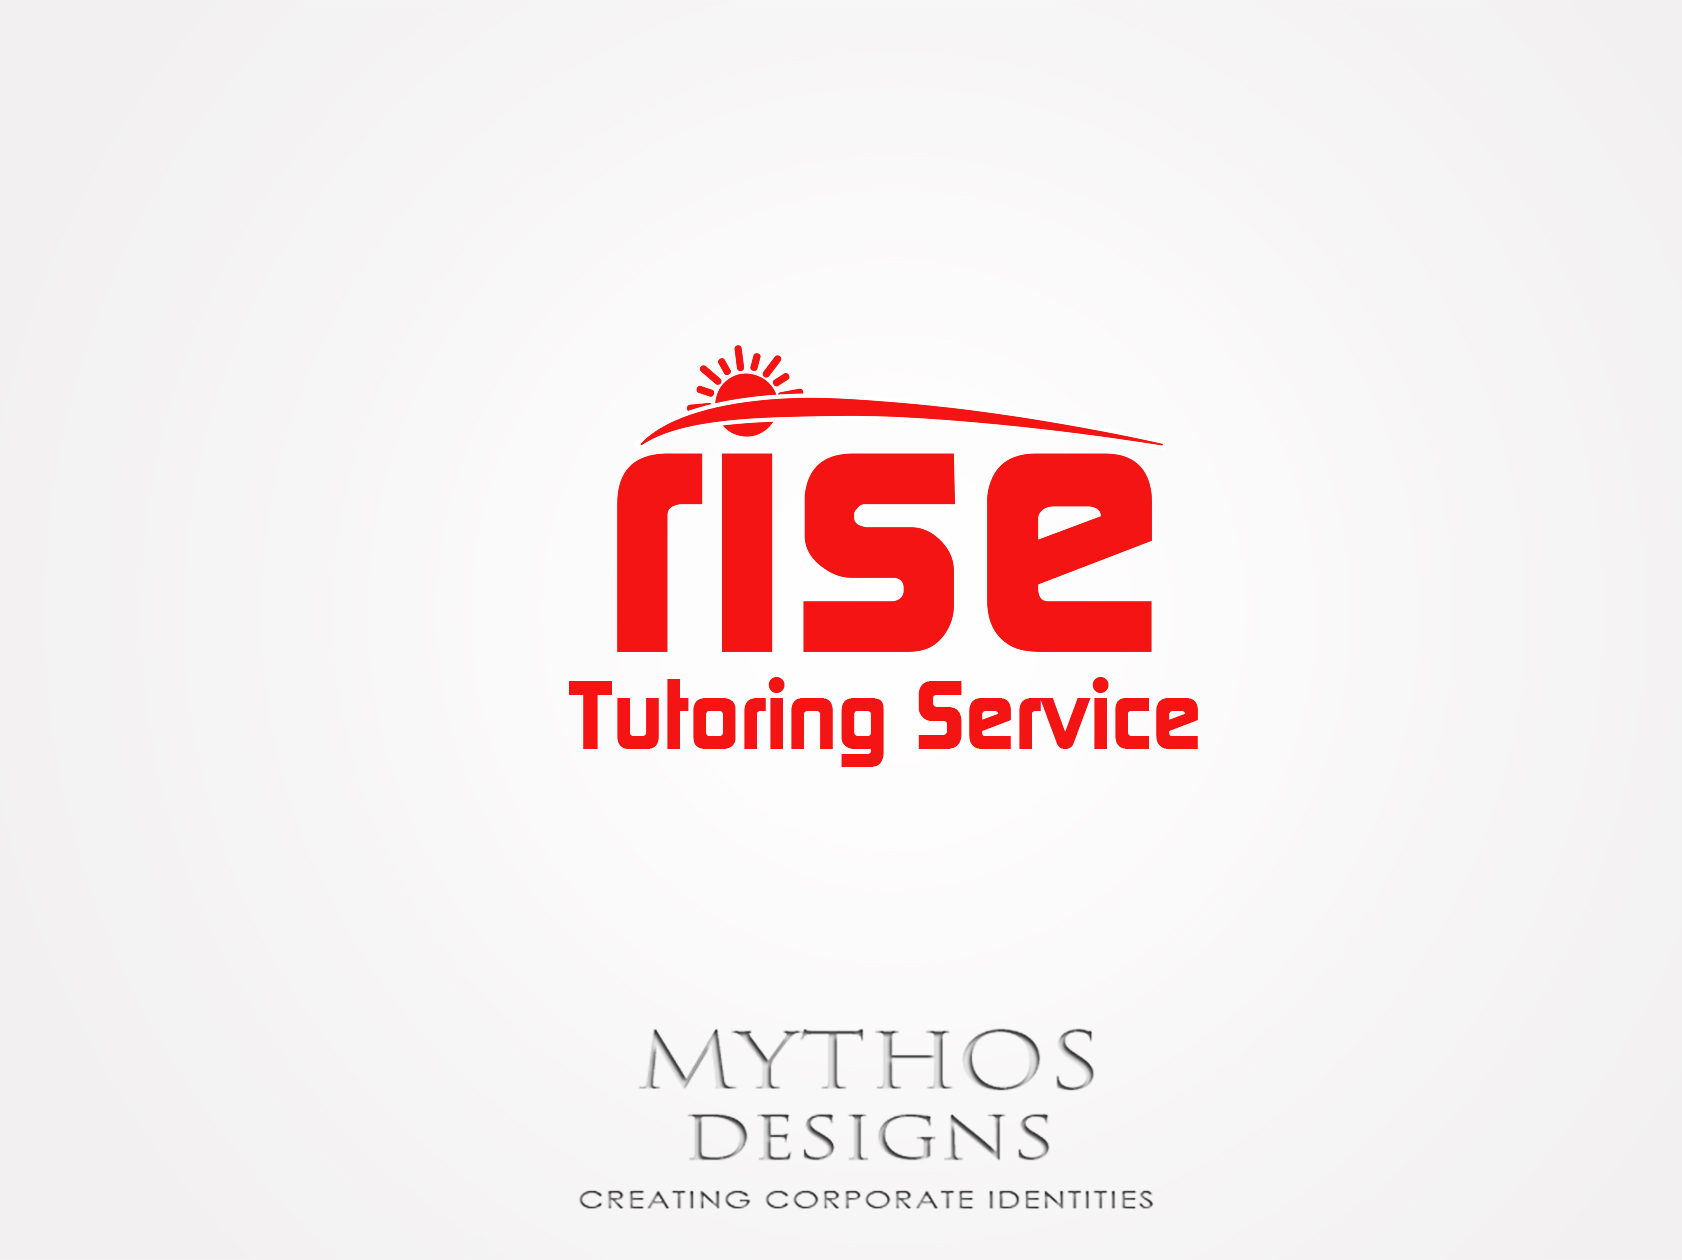 Logo Design by Mythos Designs - Entry No. 147 in the Logo Design Contest Imaginative Logo Design for Rise Tutoring Service.